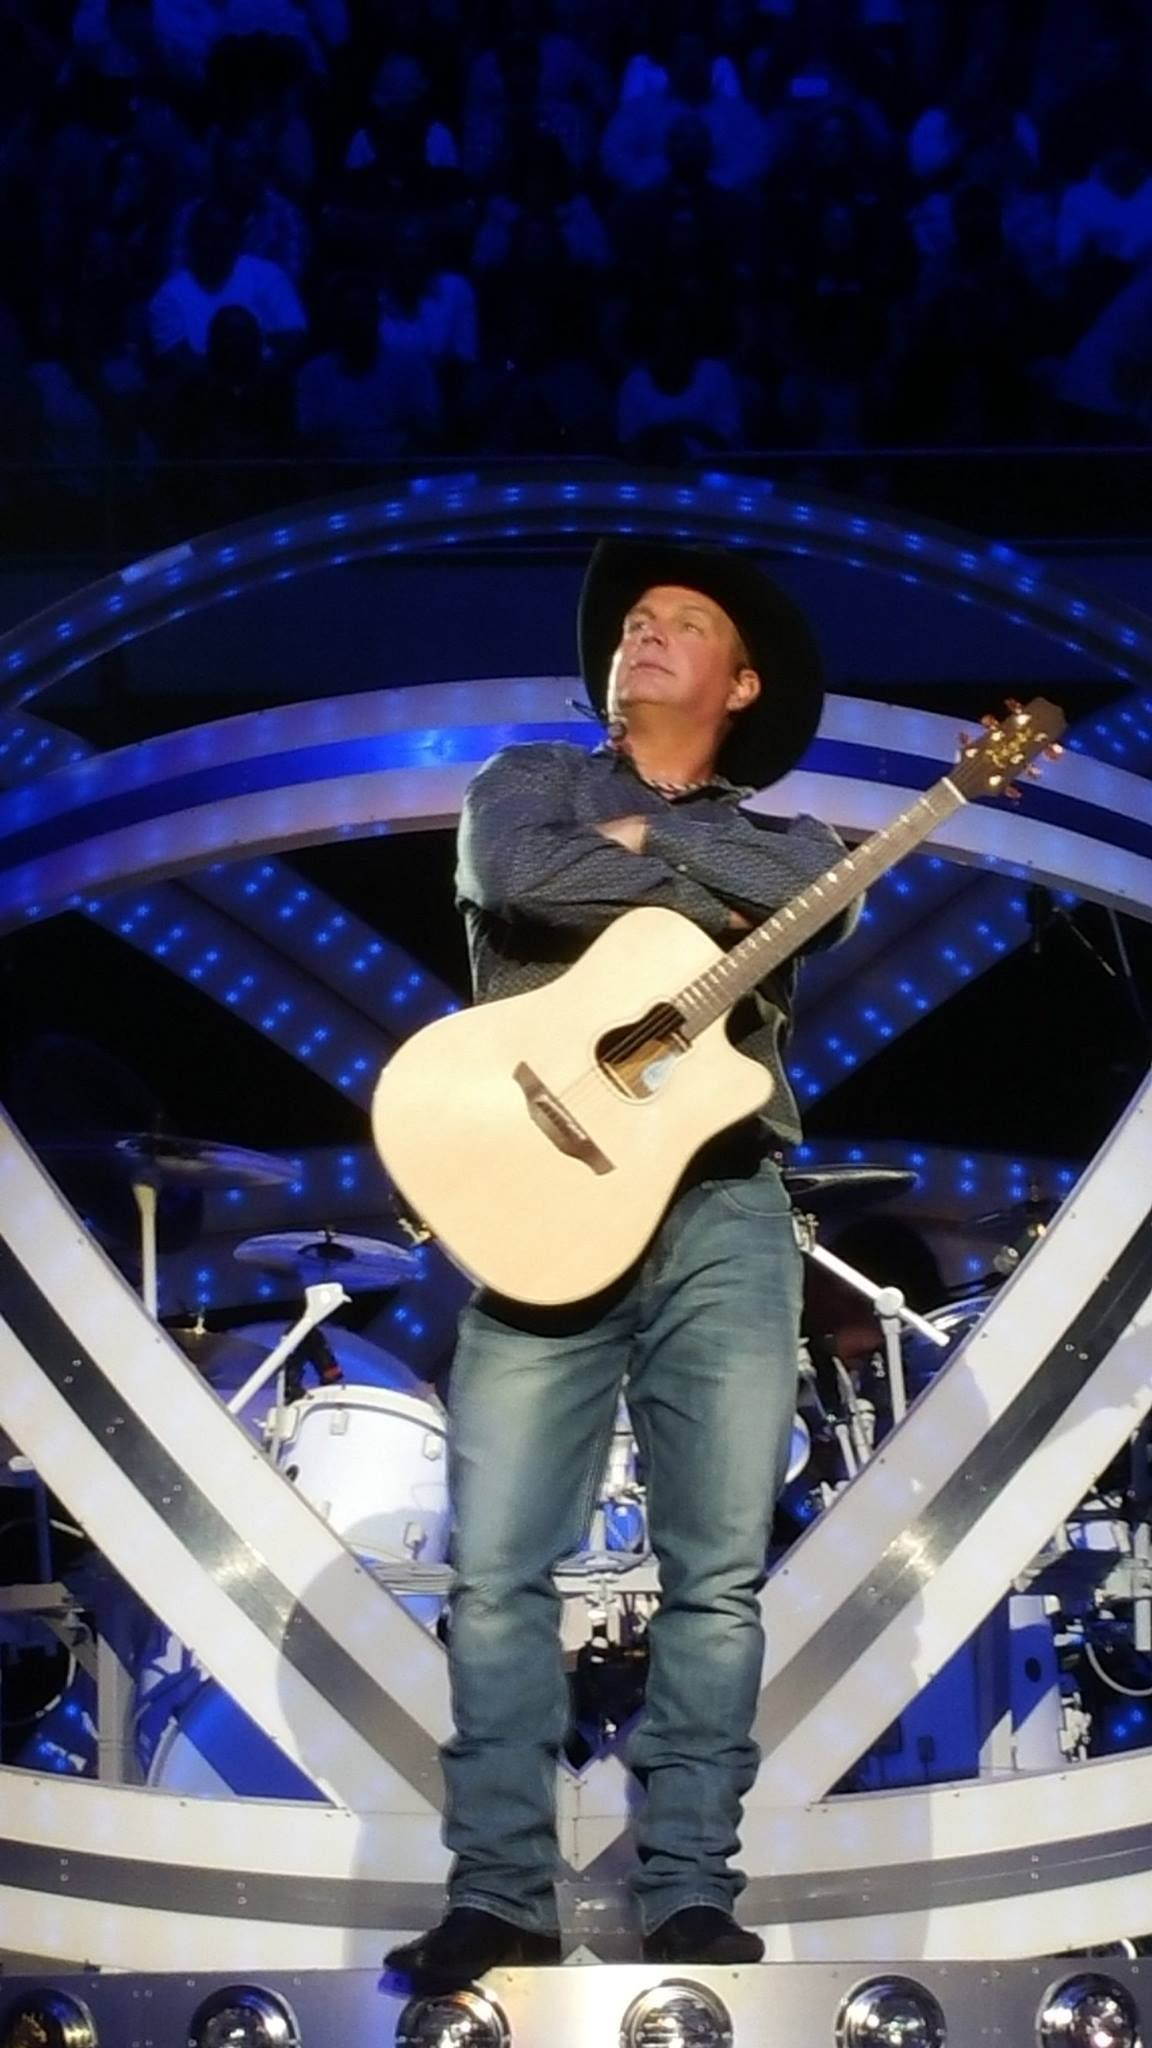 My Entertainer of the Year Garth Brooks!!!! This Garth